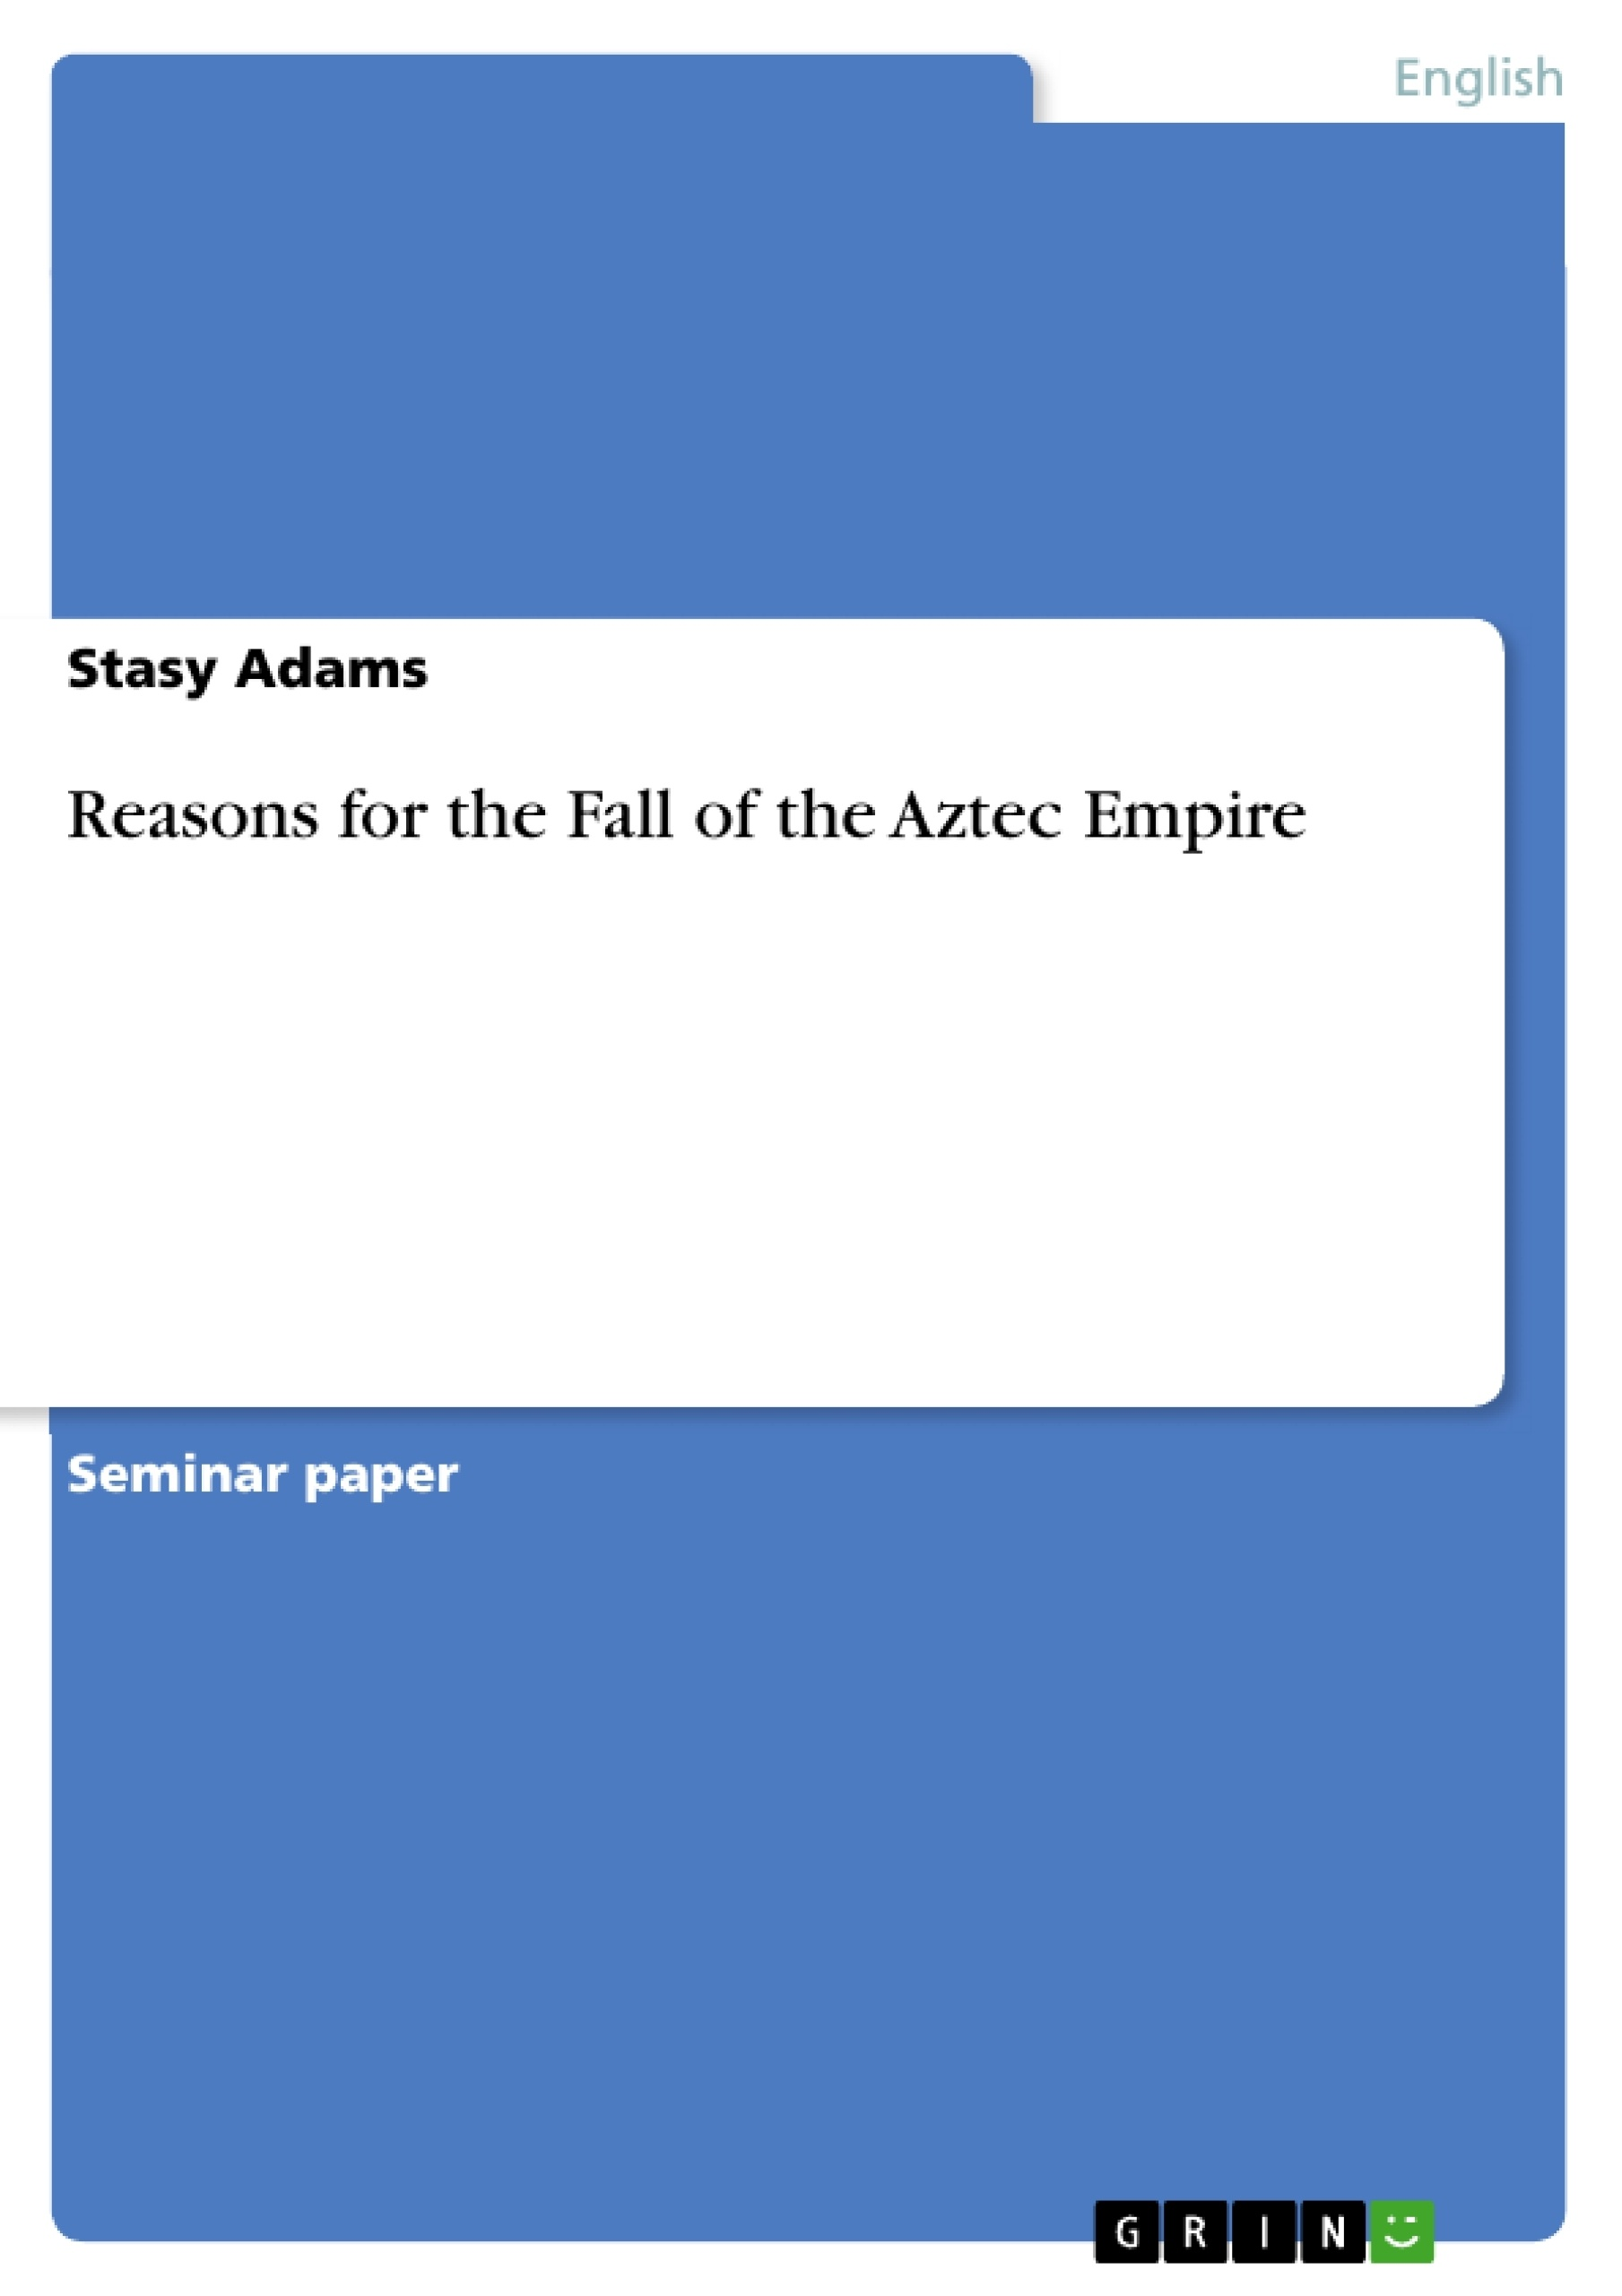 aztec essay thesis reasons for the fall of the aztec empire self publishing at grin